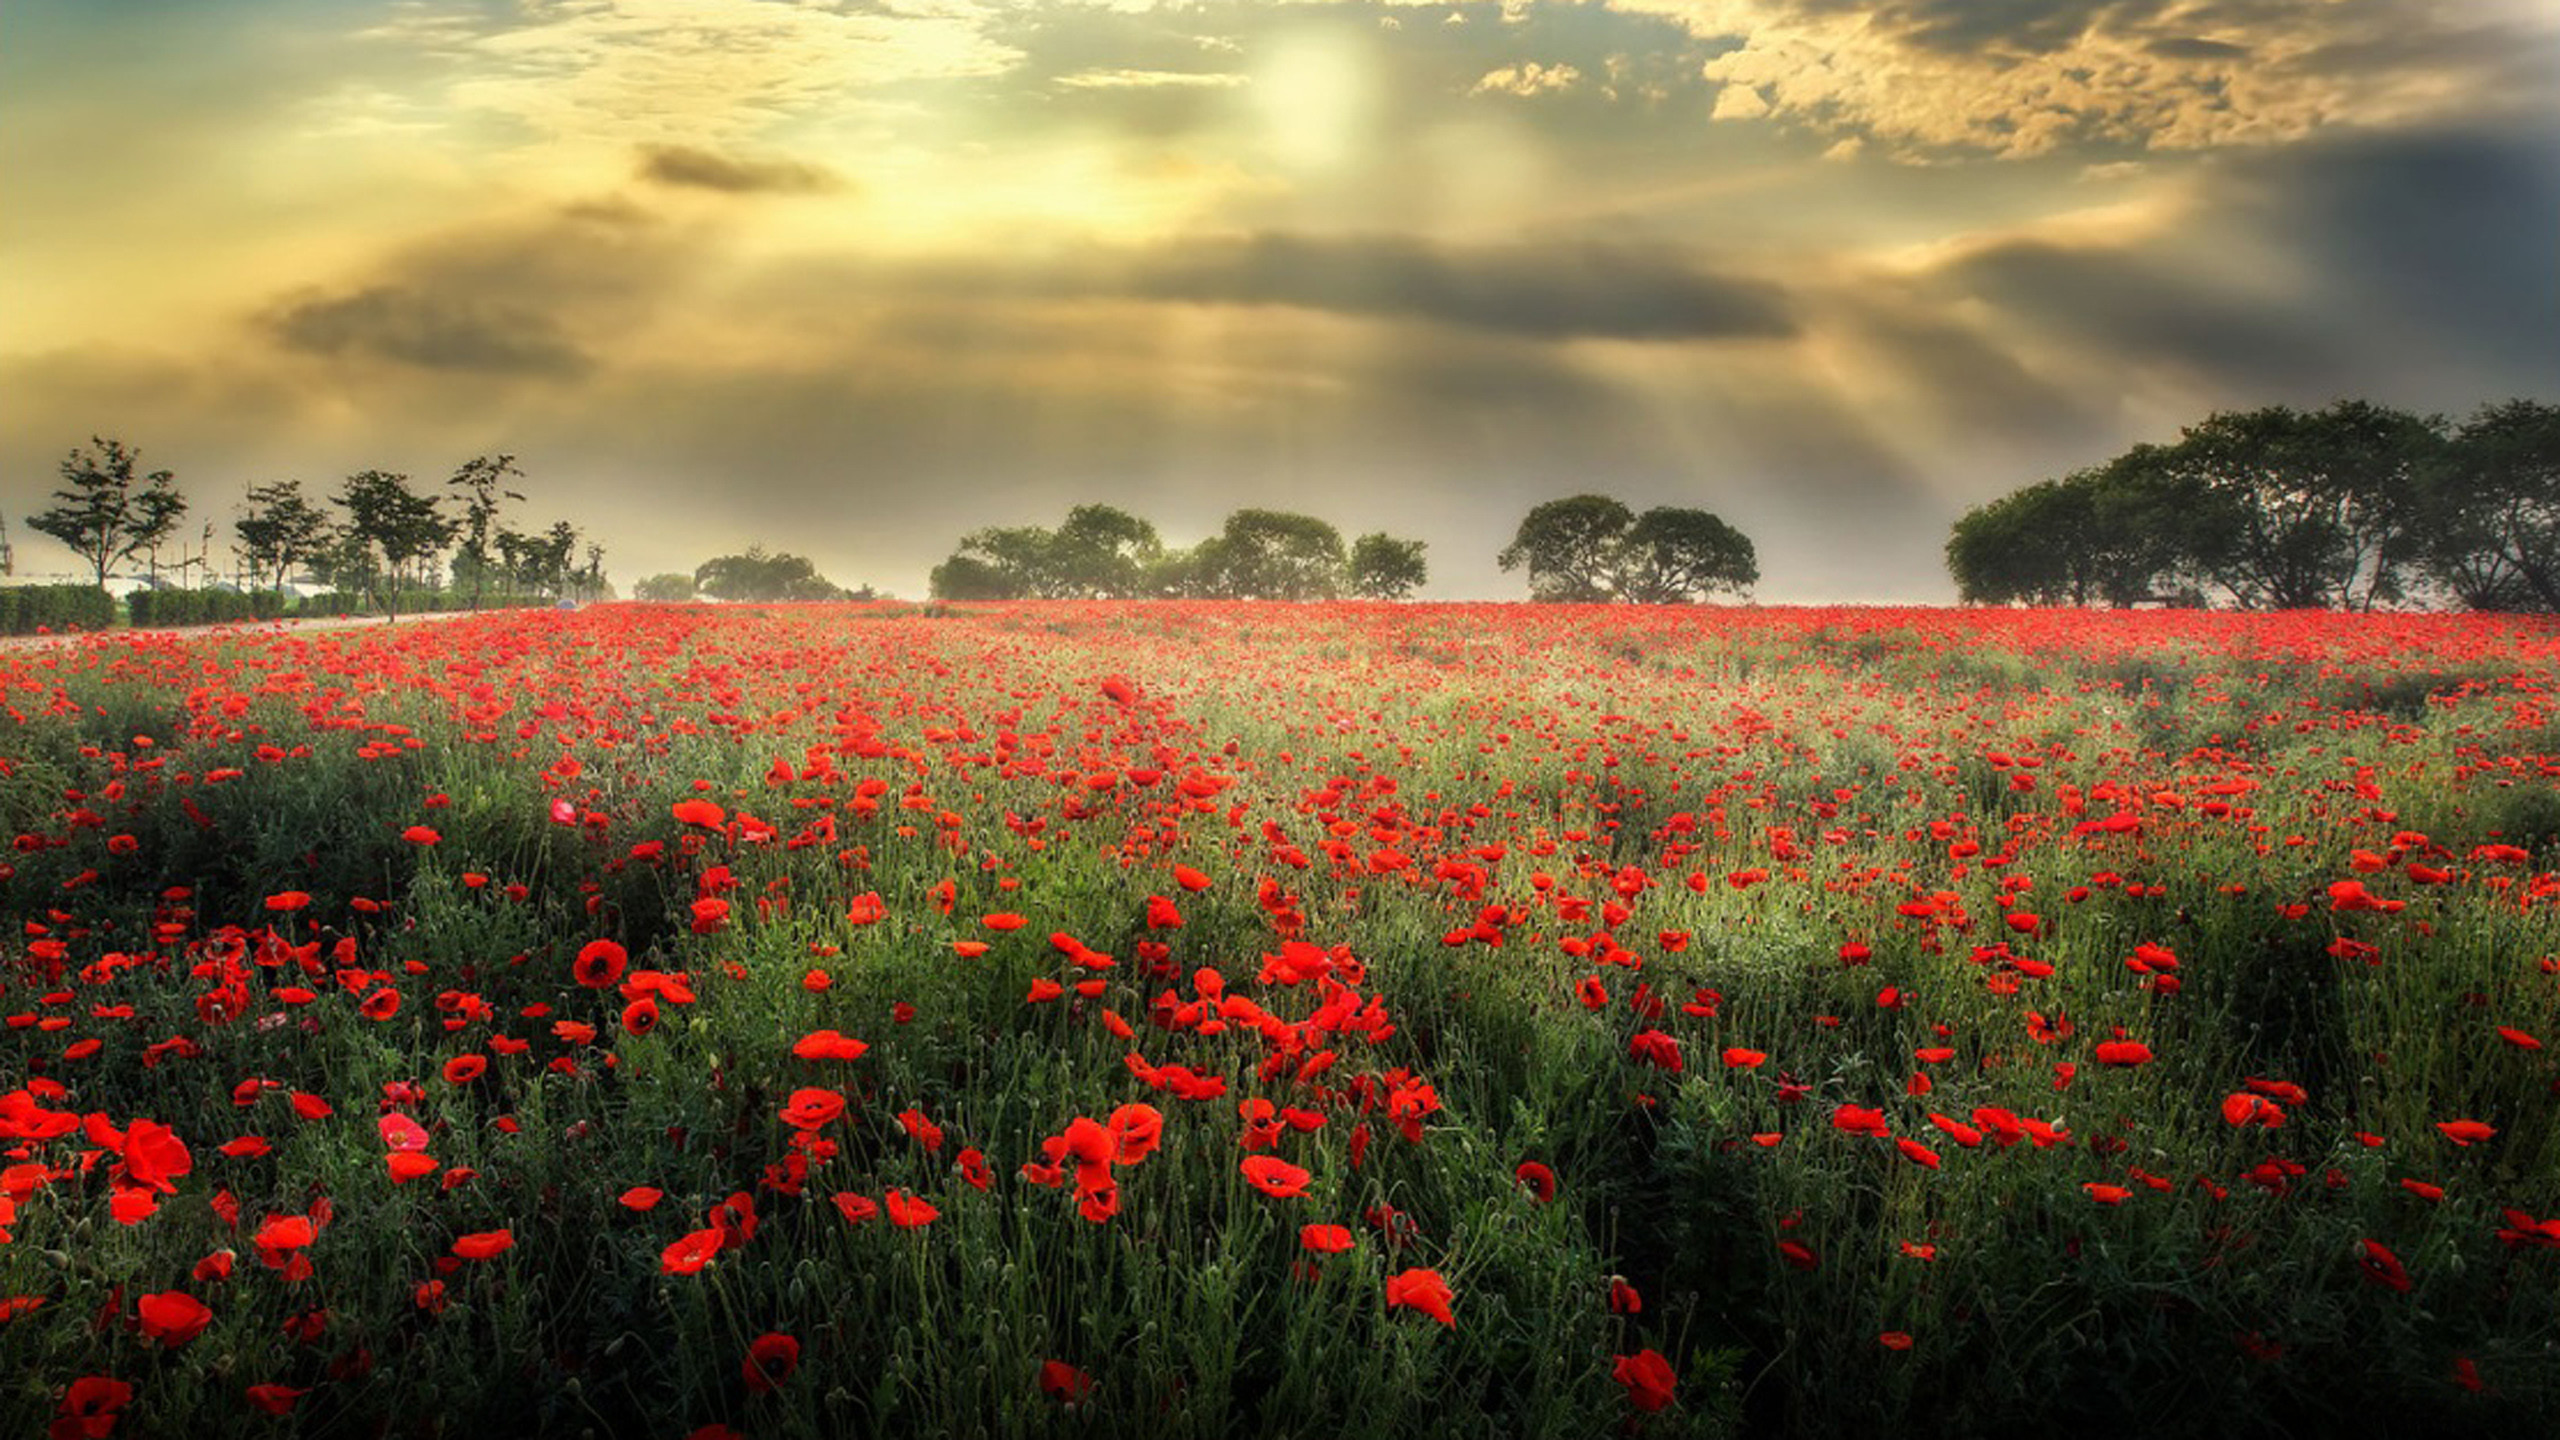 2560x1440 wallpaper poppies Meadow With Red Poppies, Dark Black Clouds Sun Rays Desktop  Wallpaper Hd